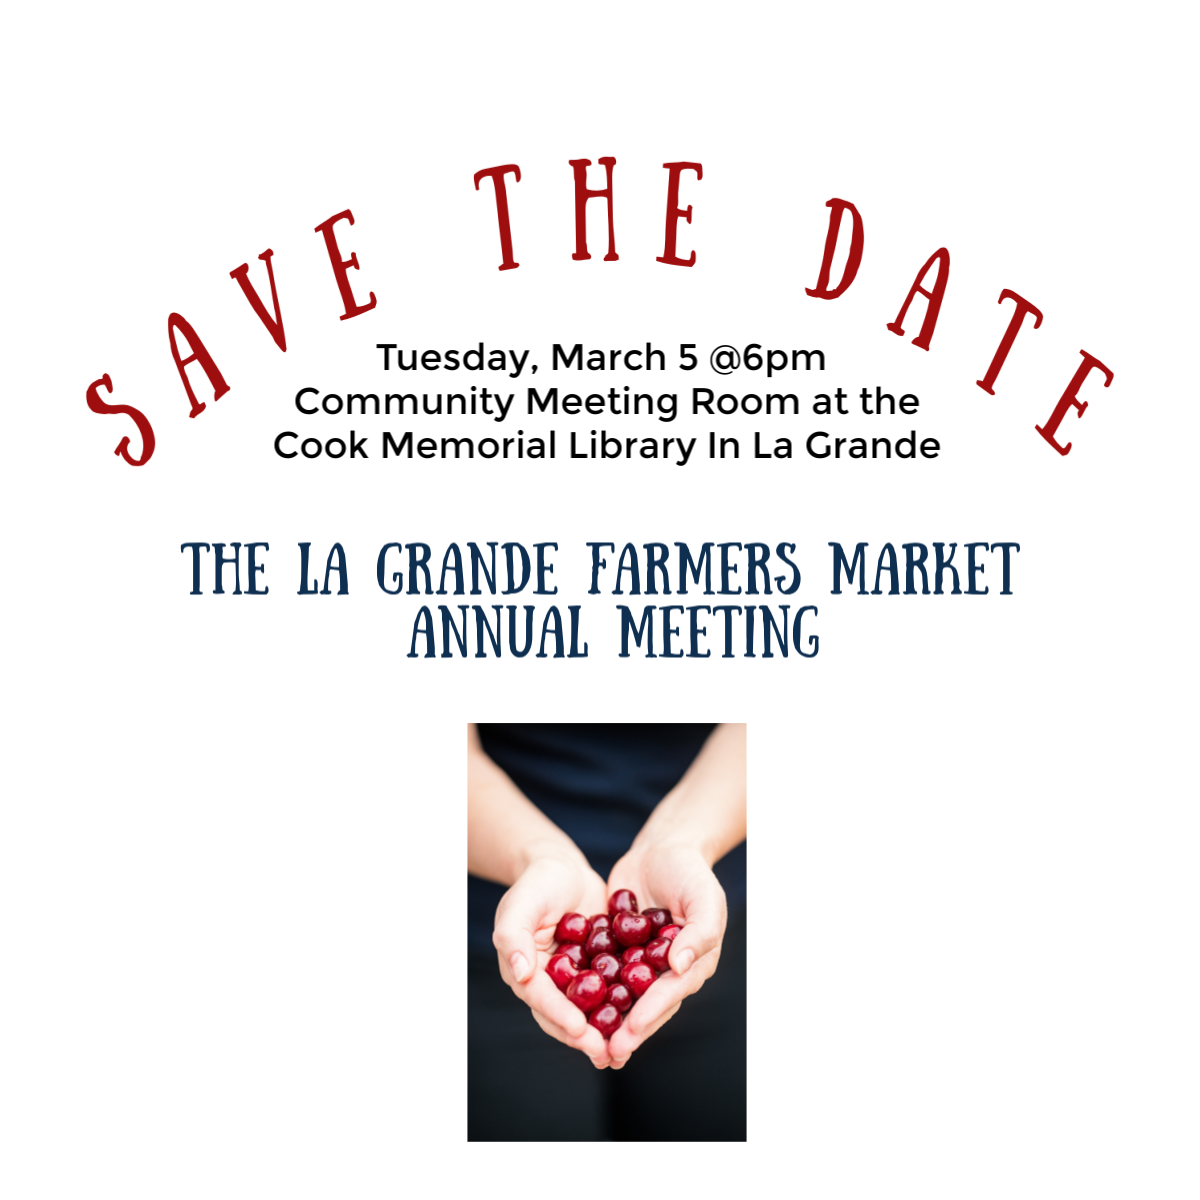 - Tuesday, March 5, 20196:00 PM 8:00 PMCook Memorial Library (map)Are you interested in becoming a vendor for the La Grande Farmers Market? Wanting more information? Curious on what is required to be a vendor? Then this meeting is for you!